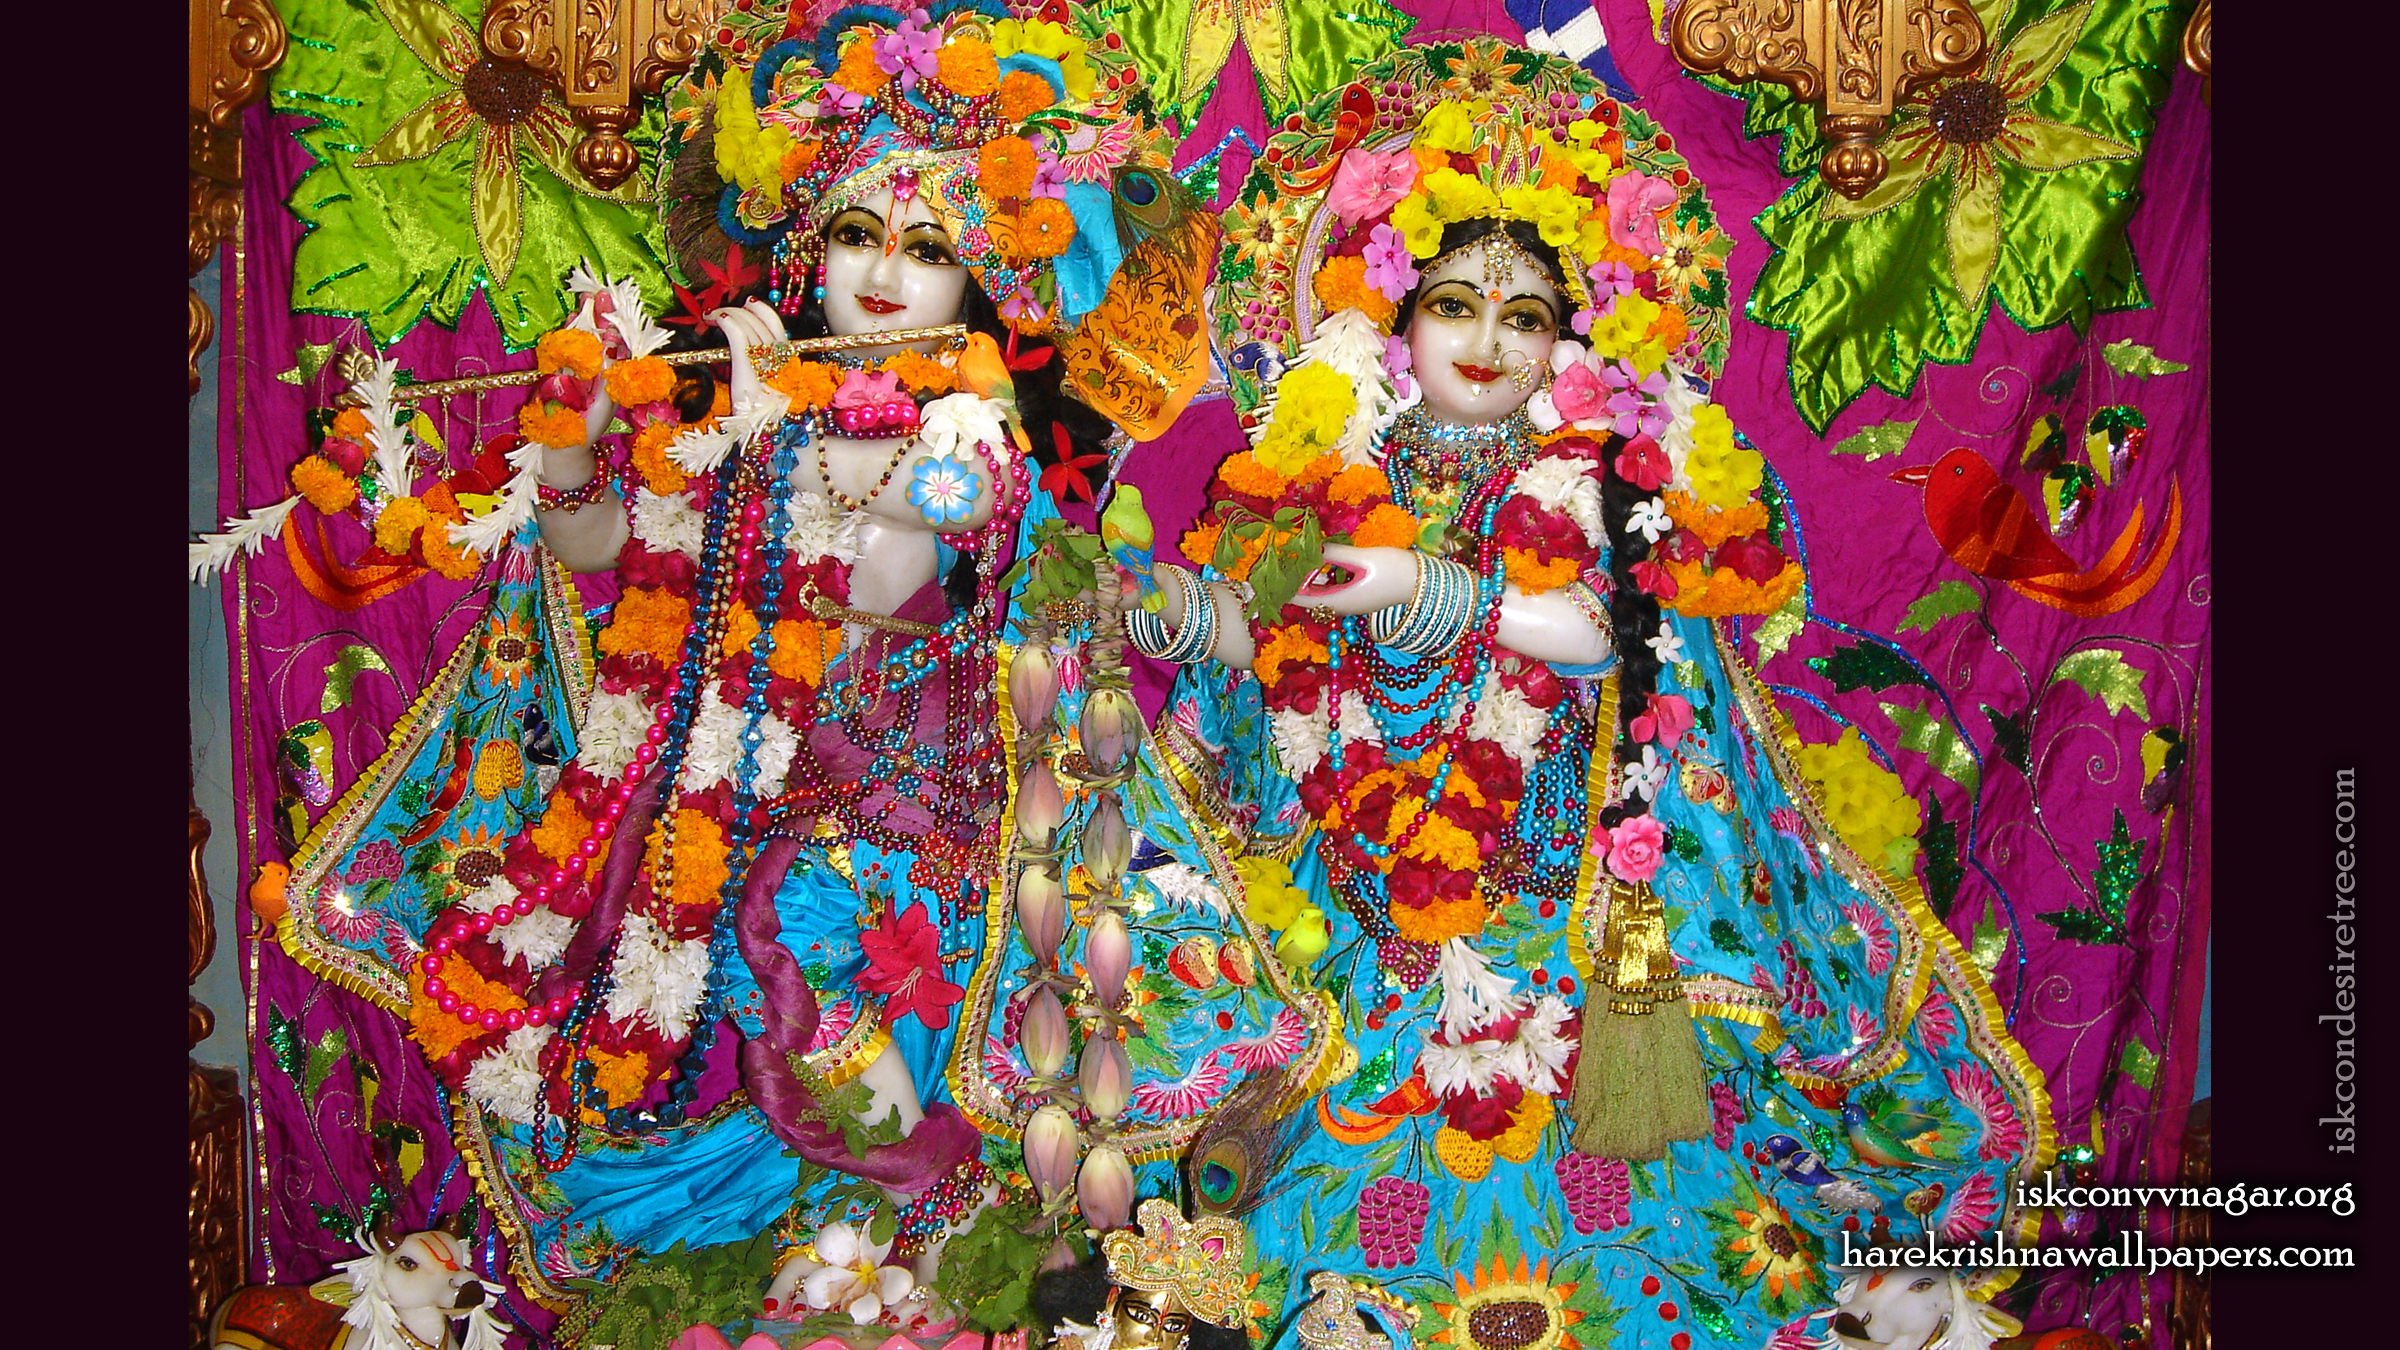 Sri Sri Radha Giridhari Wallpaper (015) Size 2400x1350 Download